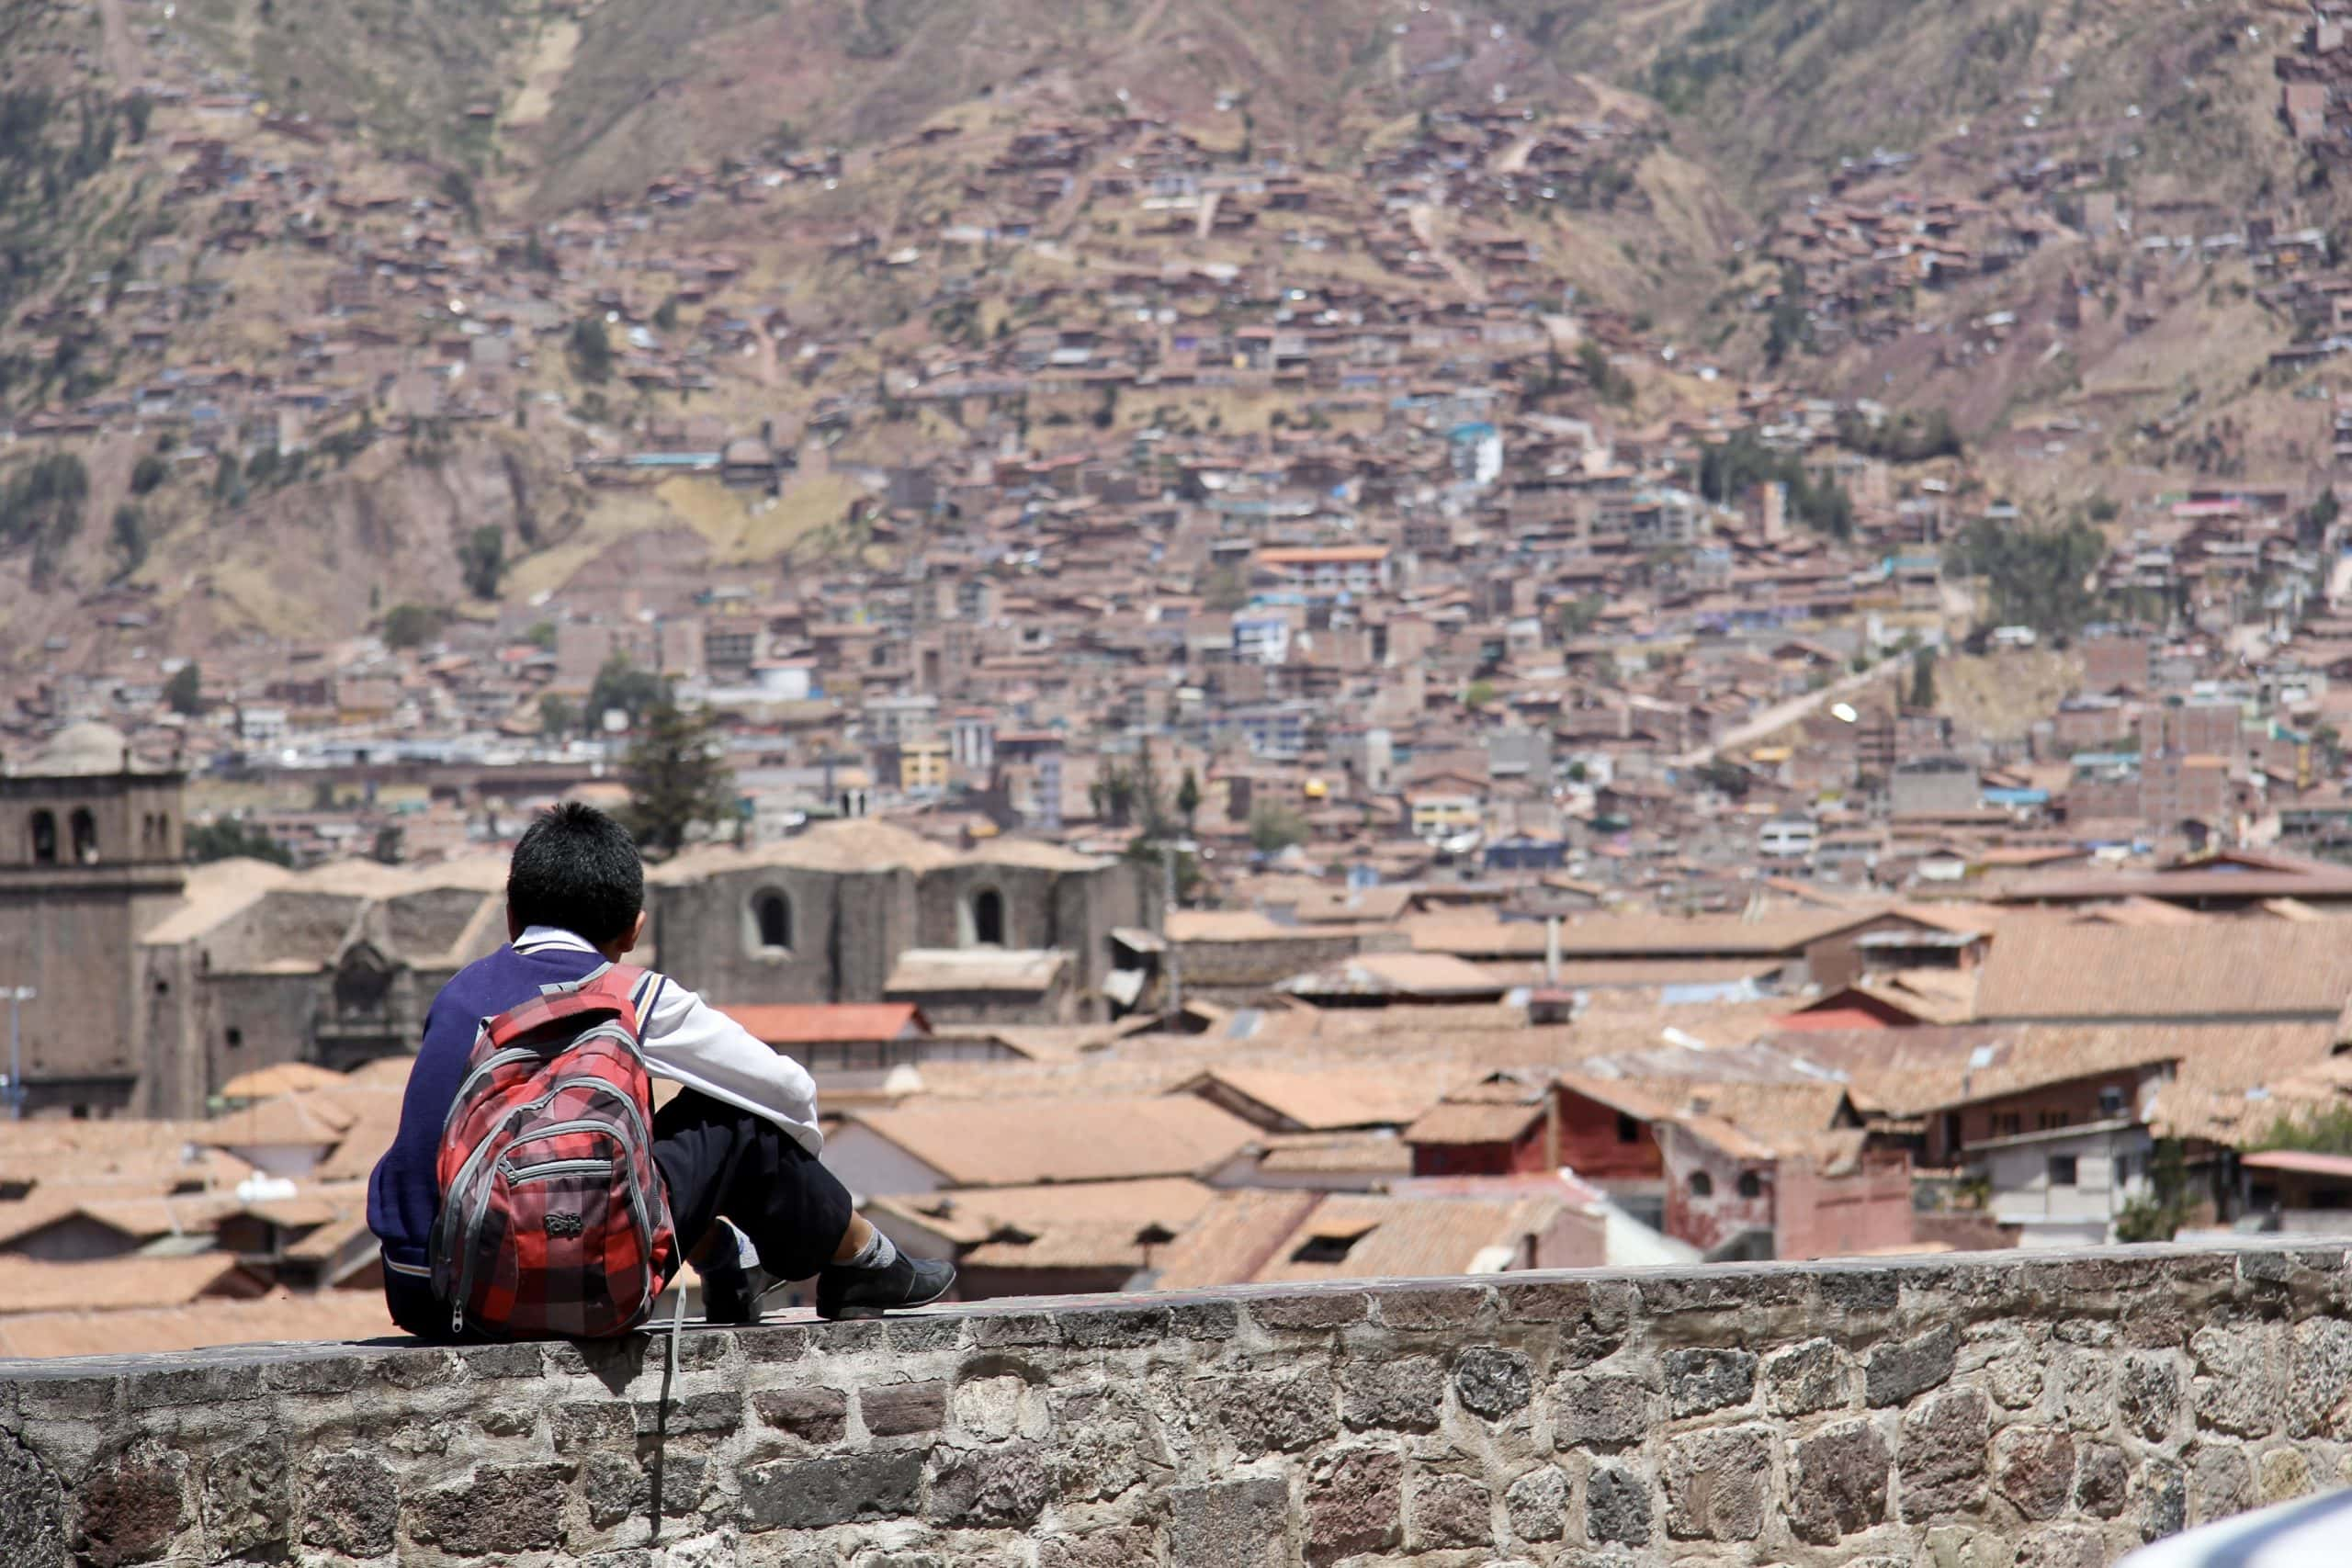 Boy sits overlooking the red rooftops and sloping hills of cusco in peru